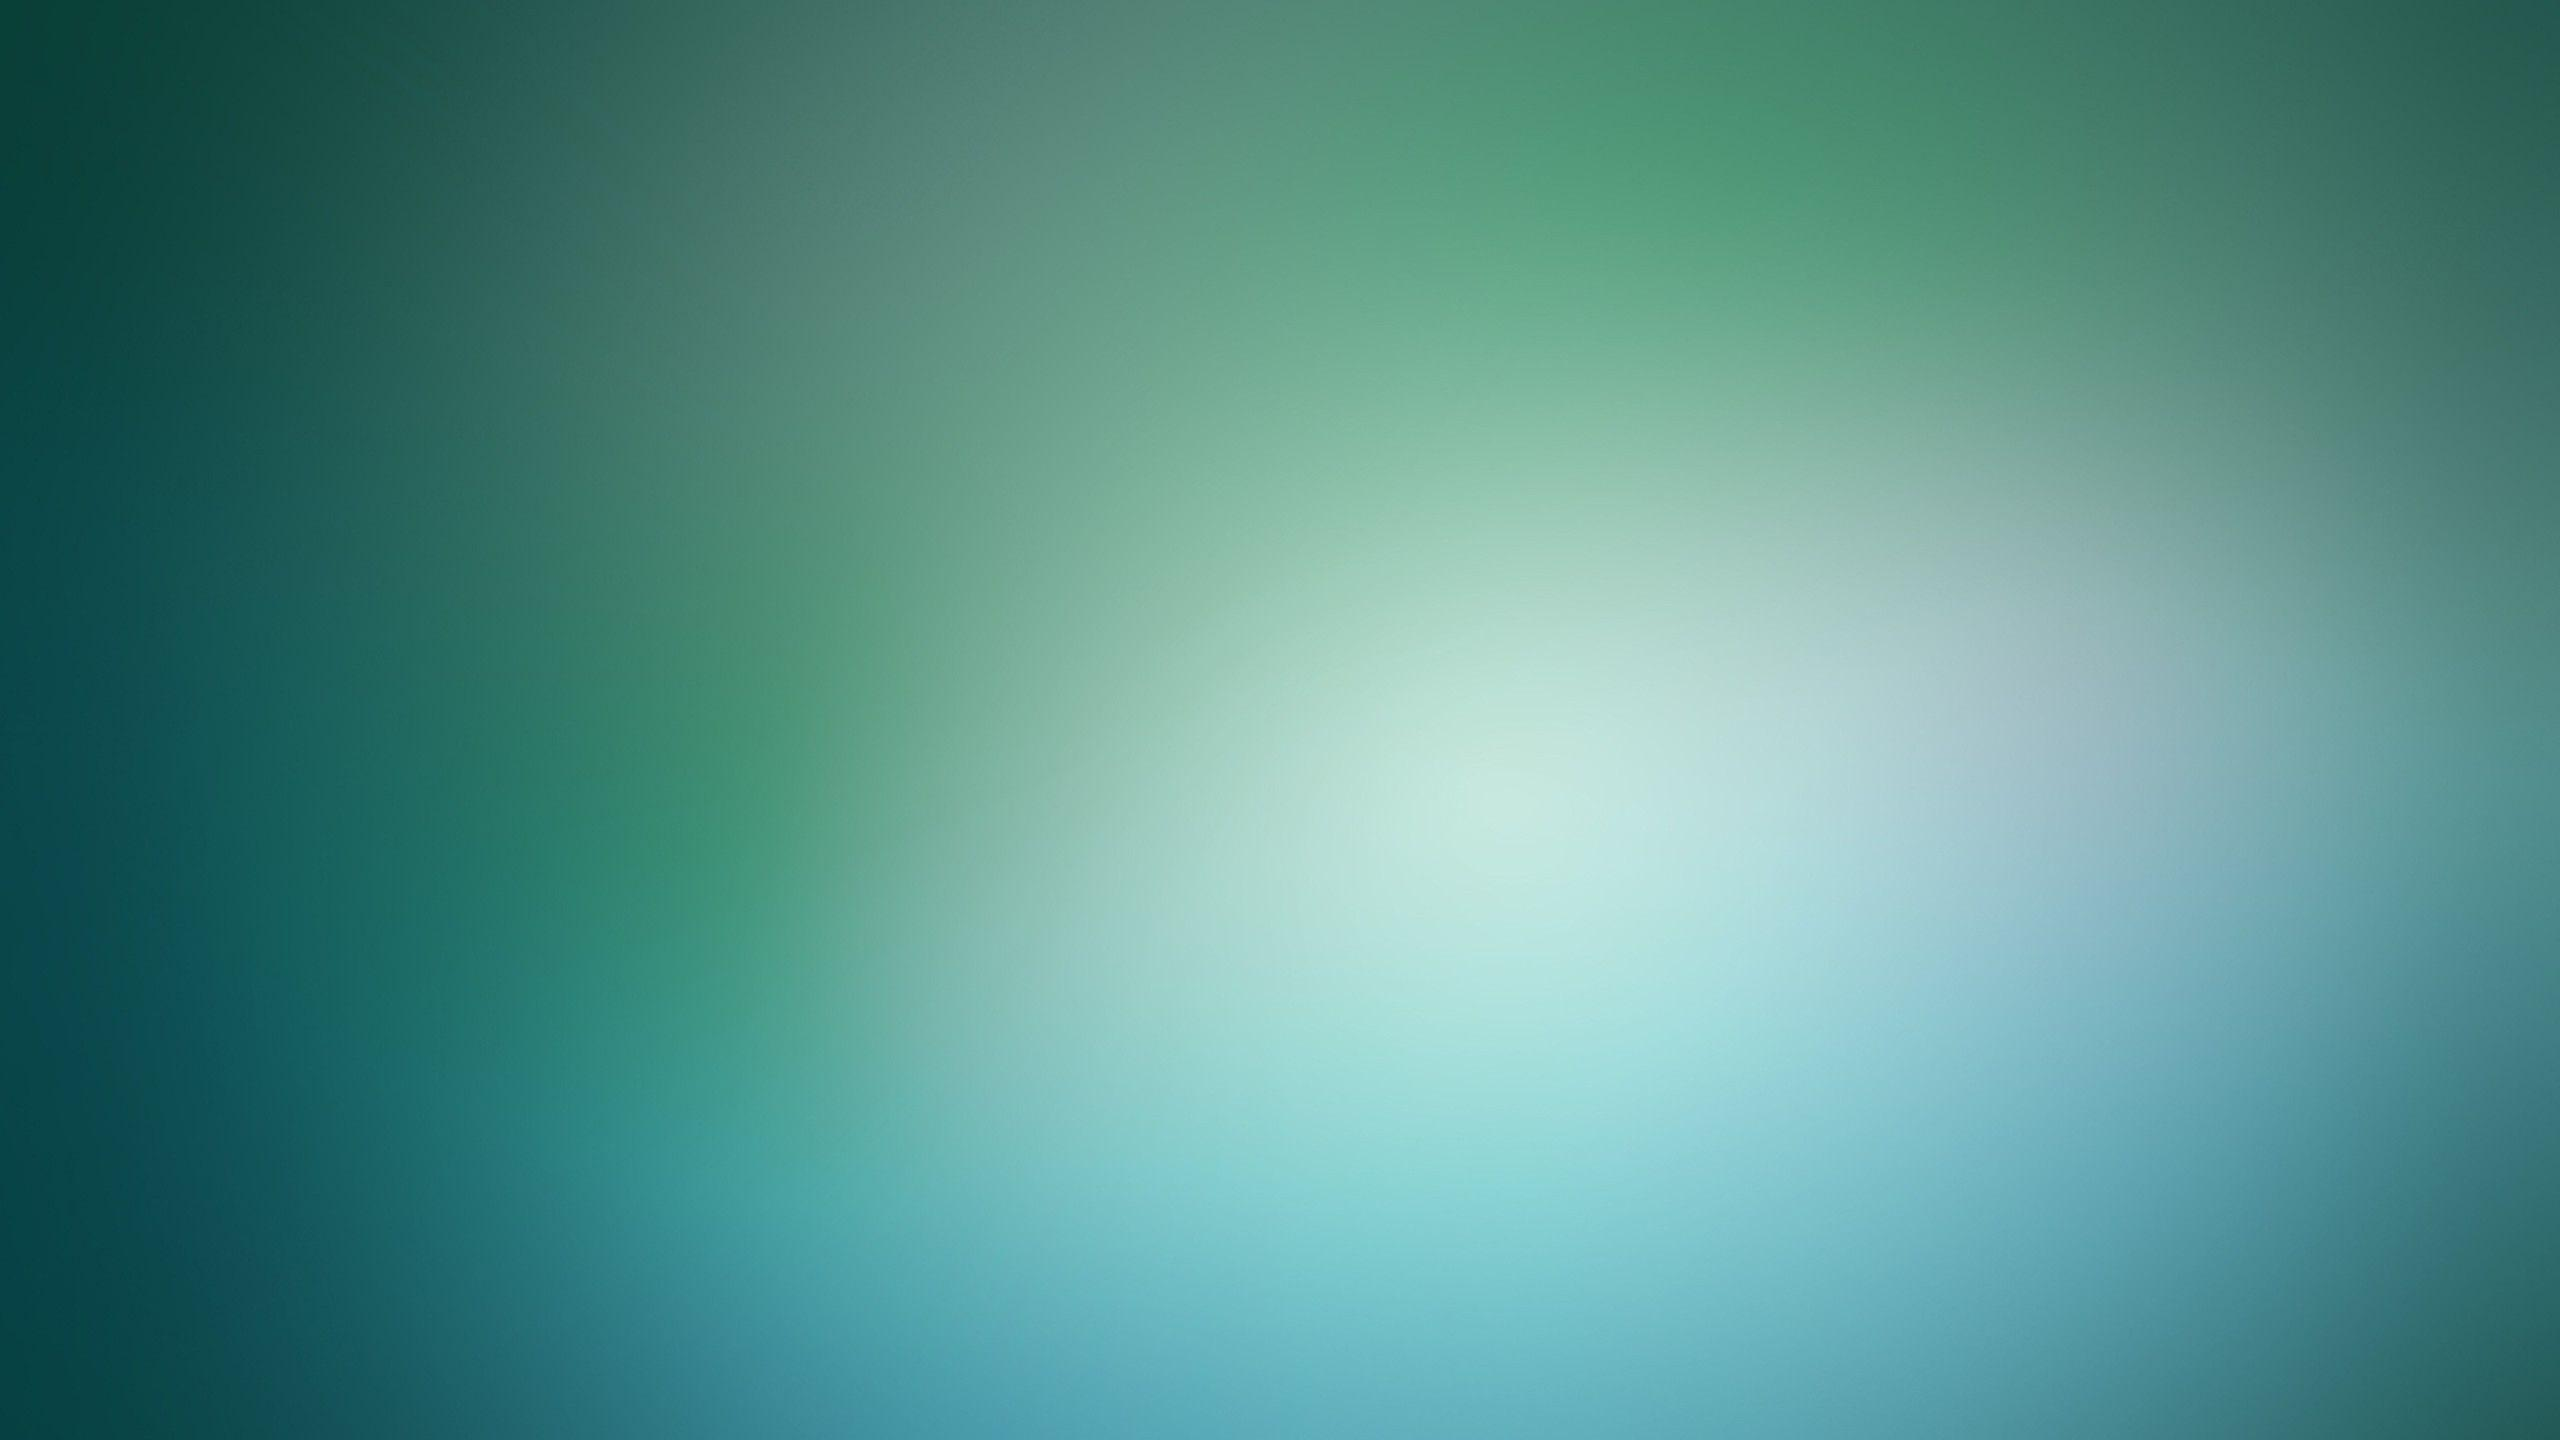 solid light blue wallpaper hd - photo #28